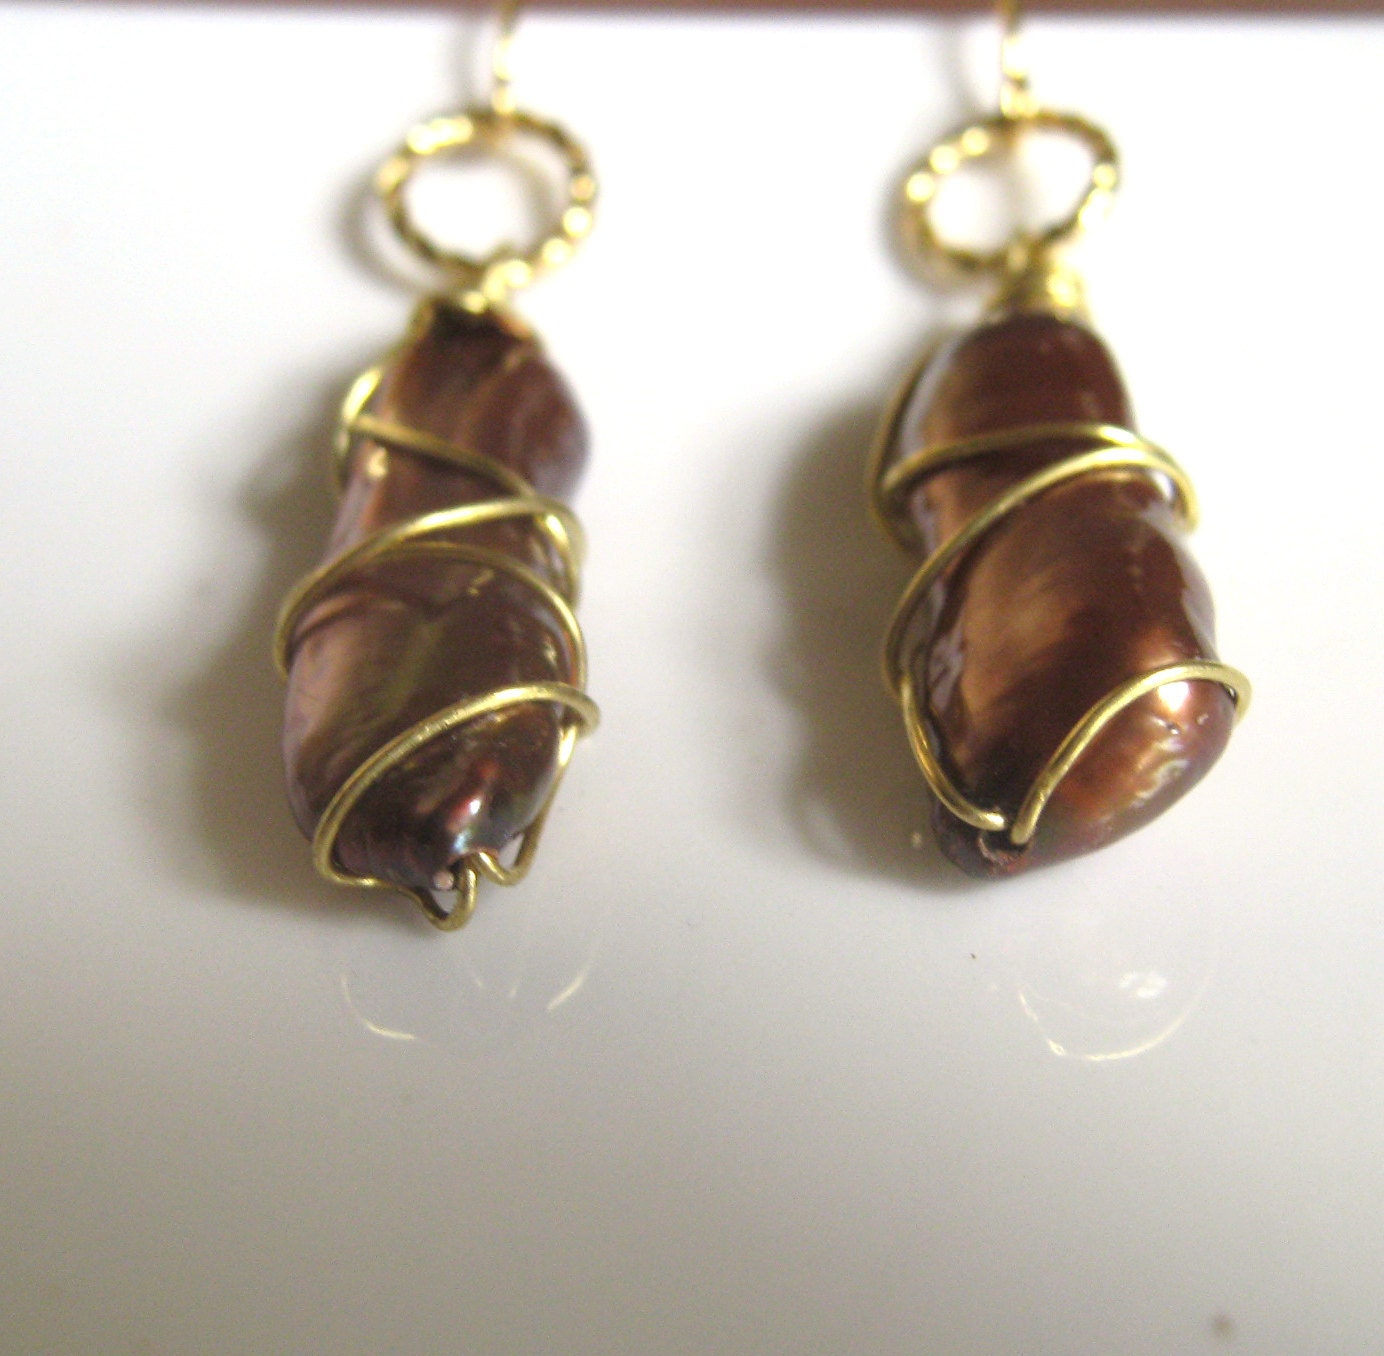 Bronze and Gold Earrings - wire wrapped stick pearls